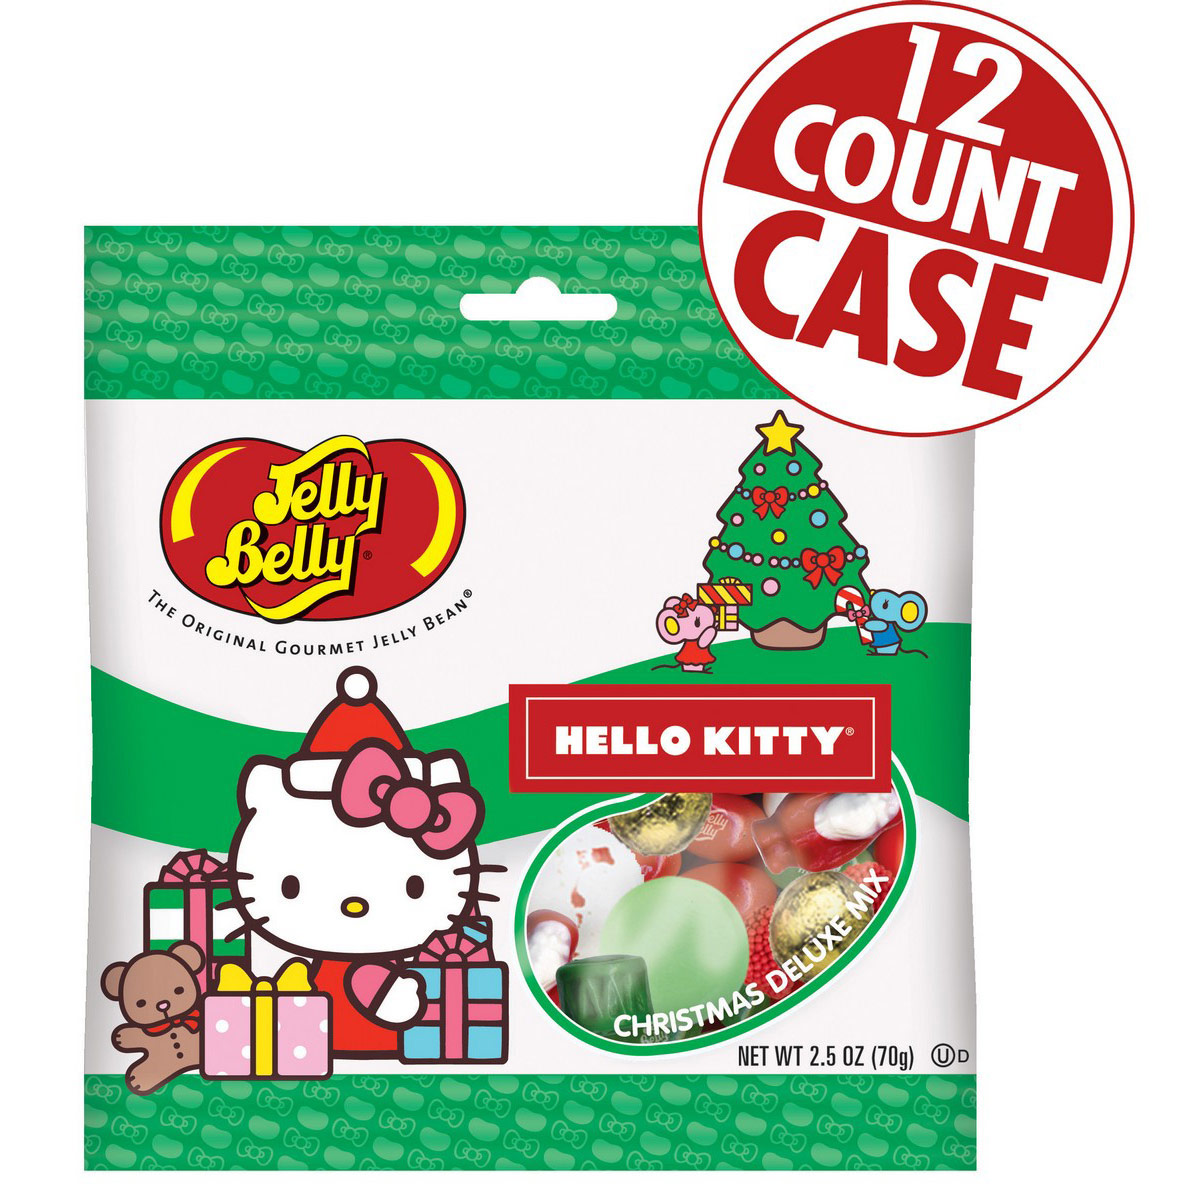 Hello Kitty® Jelly Belly Christmas Deluxe Mix - 2.5 oz Gift Bag - 12 Count Case